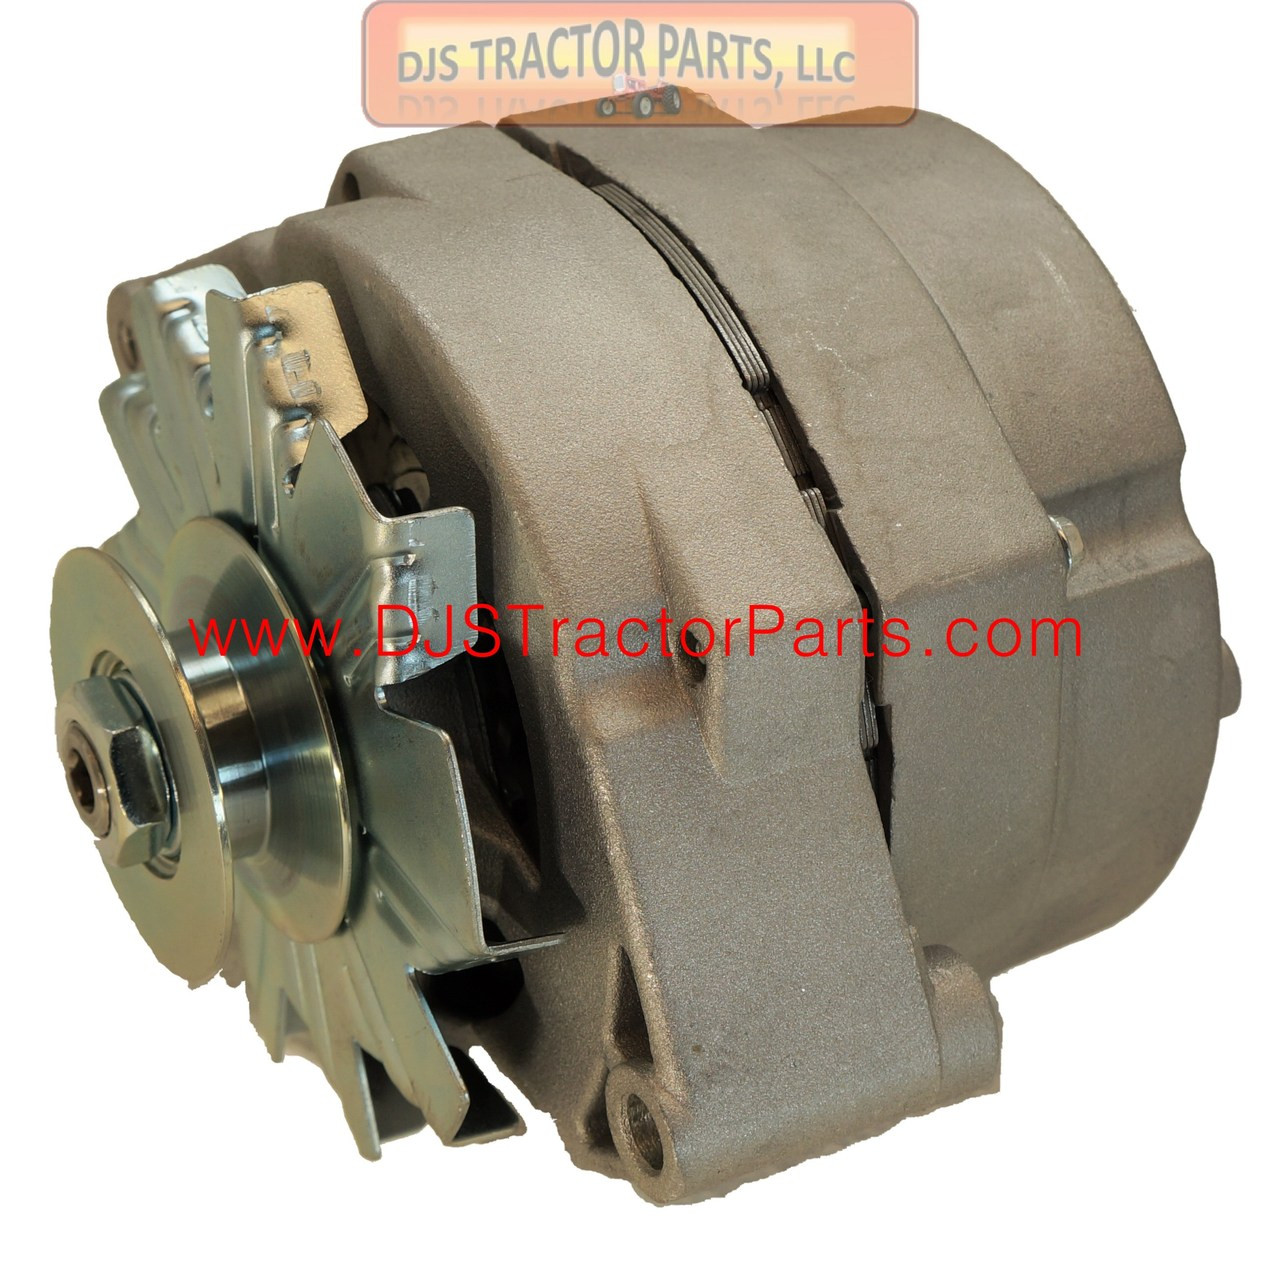 63 amp one wire alternator with pulley used for converting 6 volt to 12 volt ab 418d djs tractor parts llc [ 1280 x 1280 Pixel ]